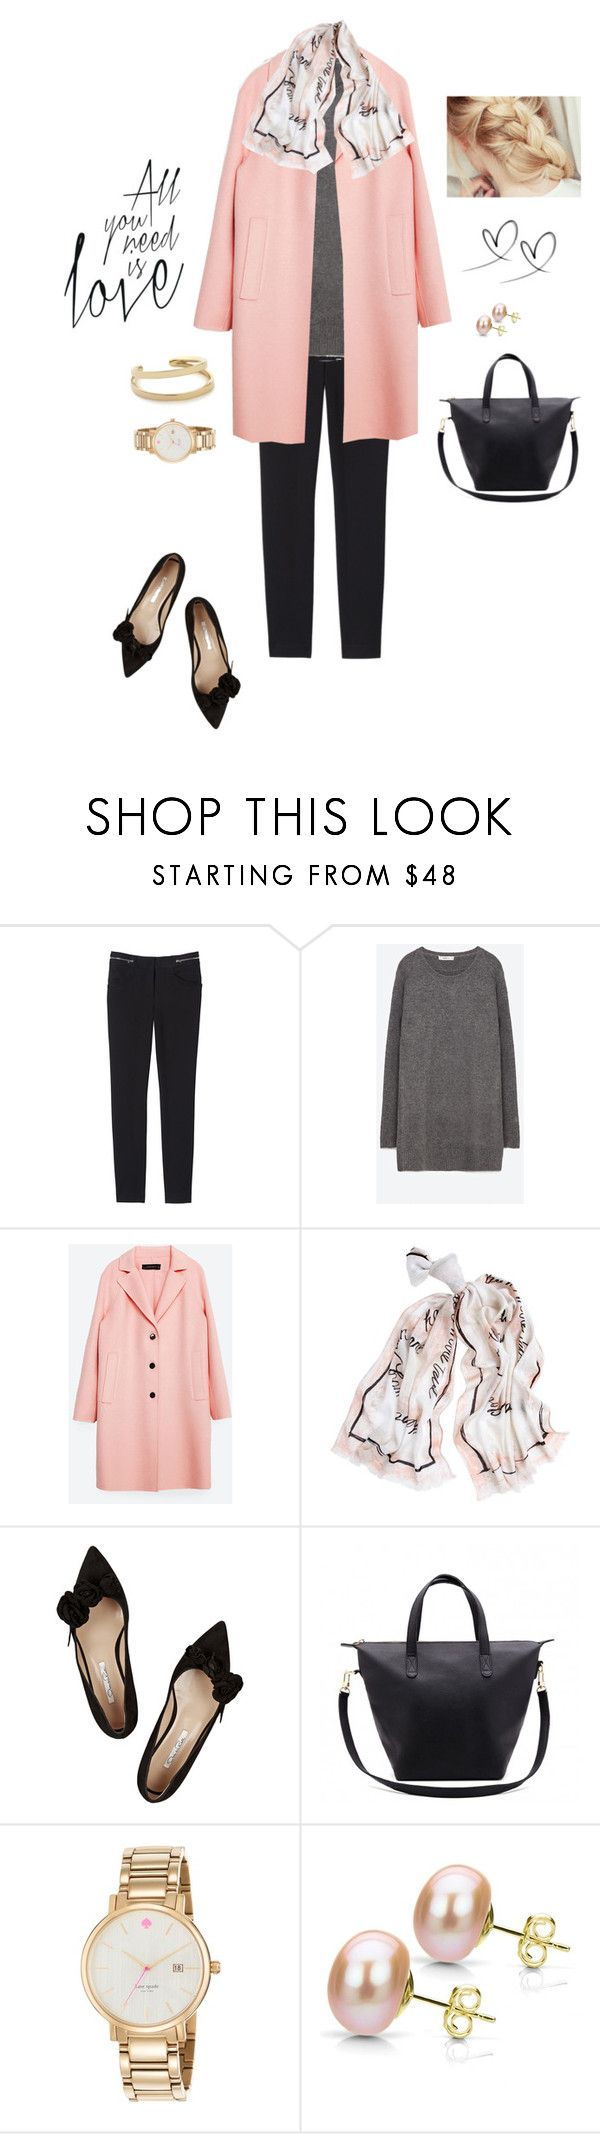 """""""Love is in the Air"""" by bluehydrangea ❤ liked on Polyvore featuring Rebecca Taylor, Zara, White House Black Market, Oscar de la Renta, Cuyana, Kate Spade and DaVonna"""